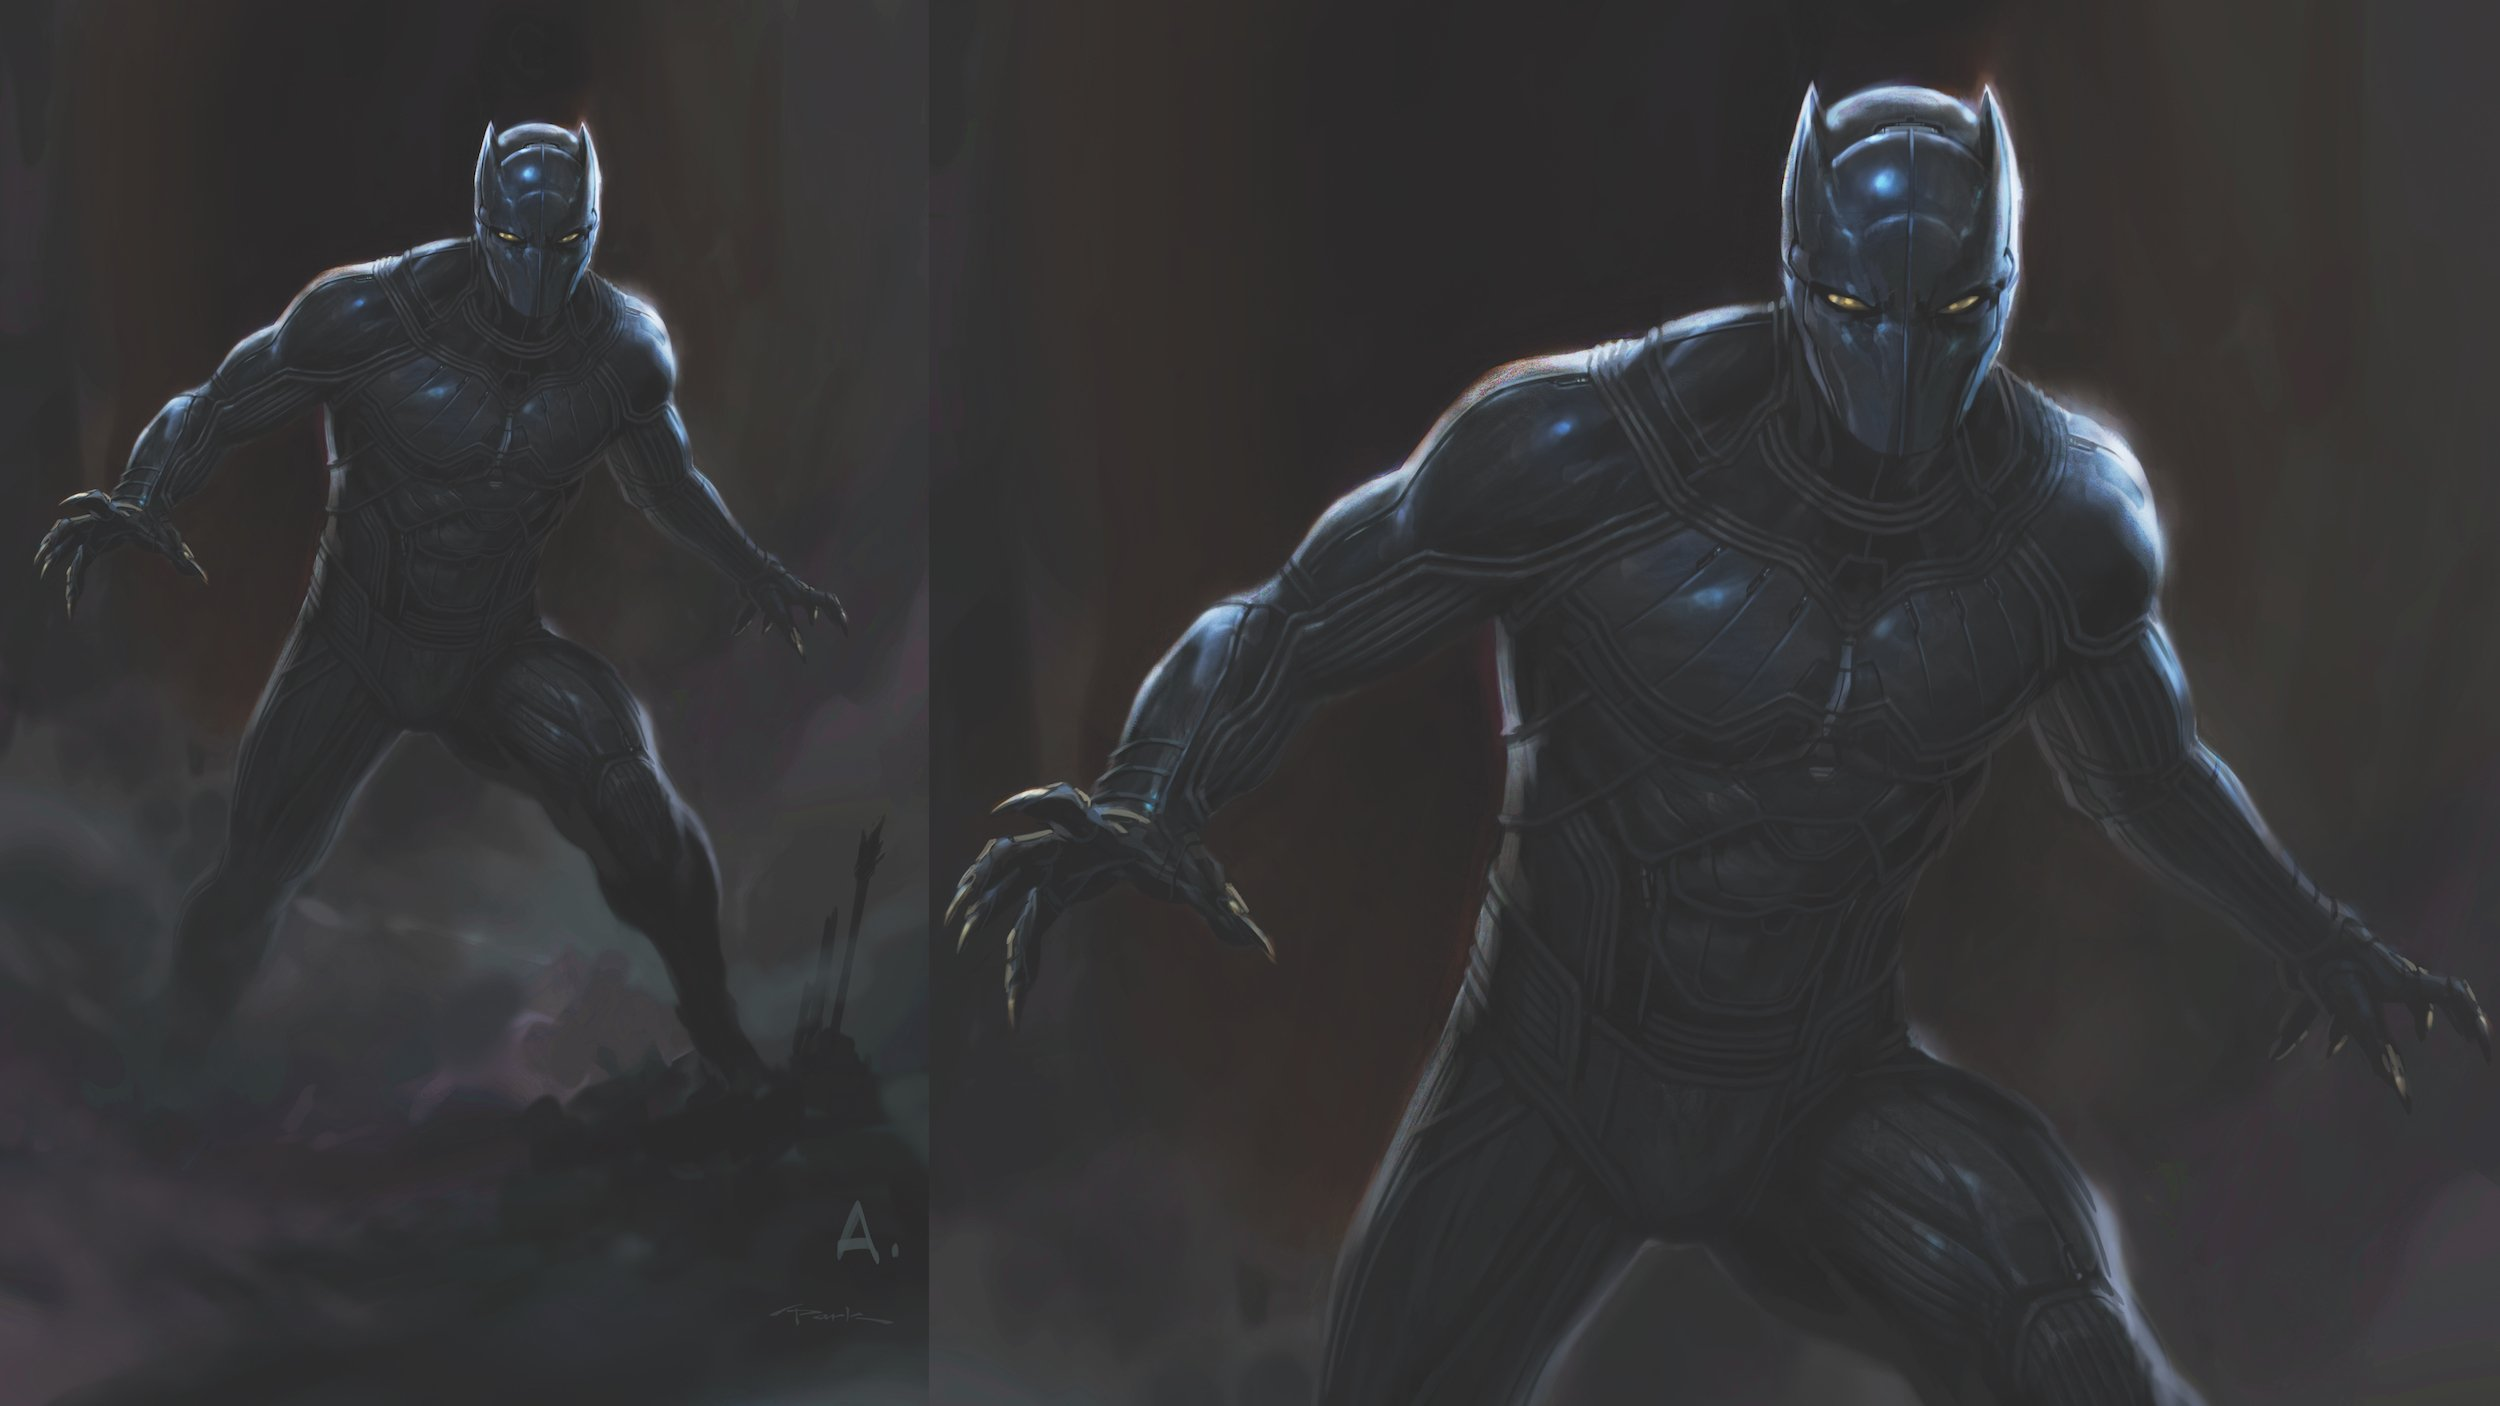 Concept art de Captain America: Civil War avec les costumes alternatifs de Black Panther